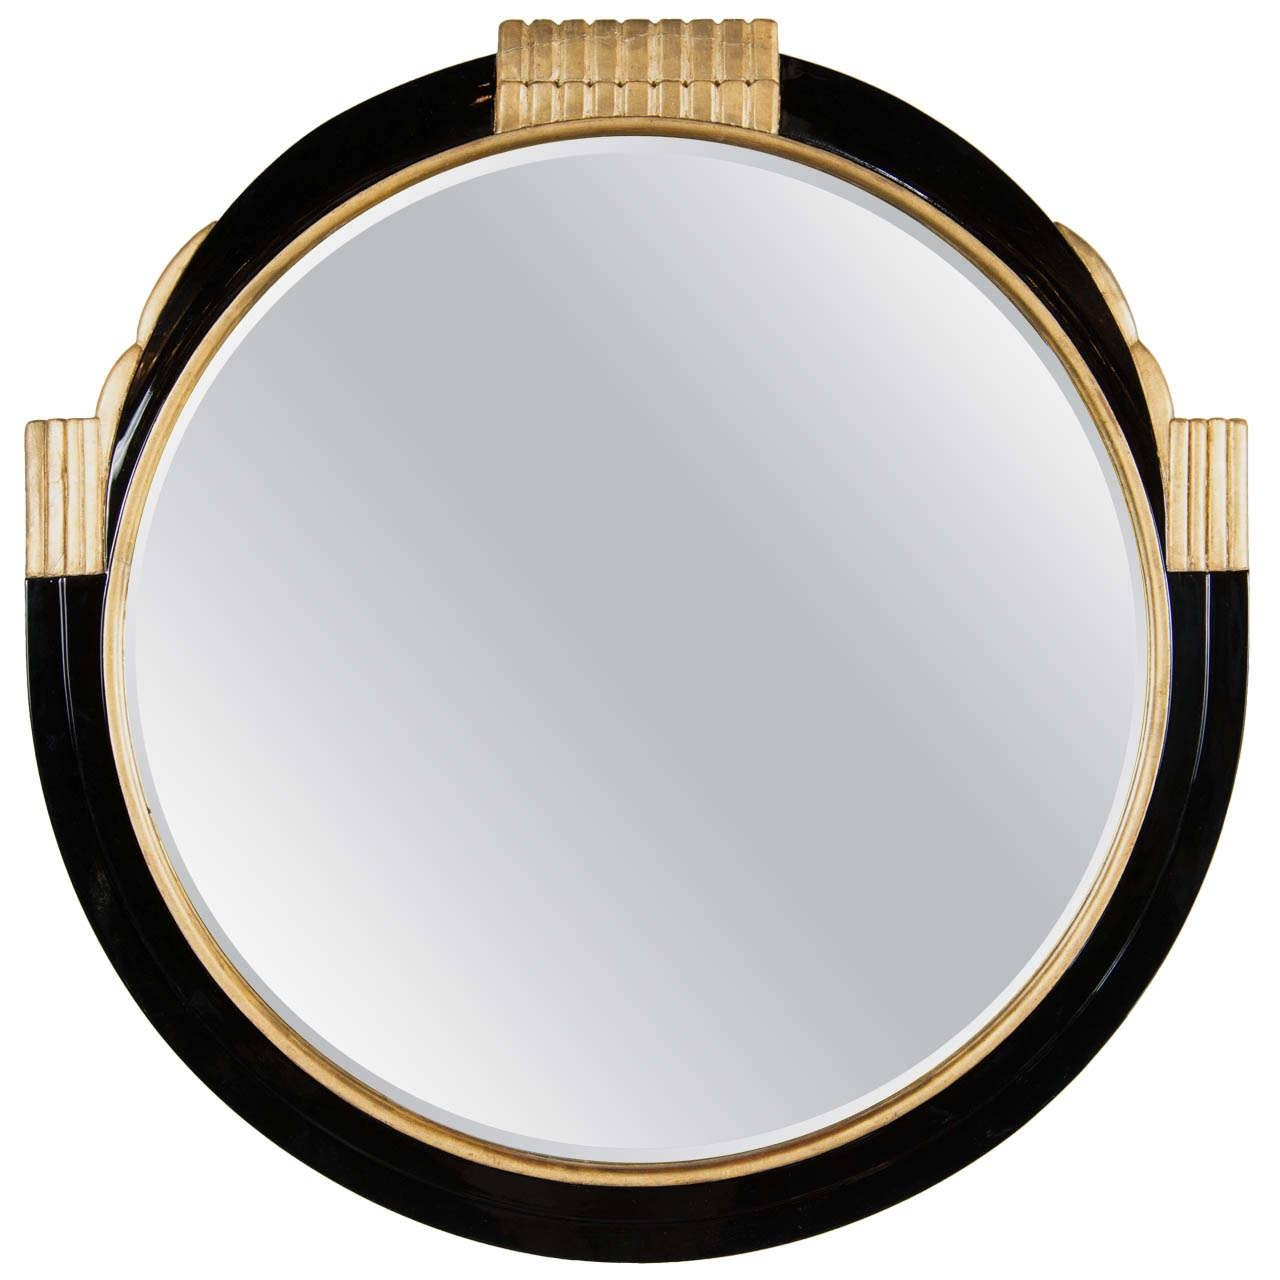 Art Deco Mirror Clips Clipart Collection regarding Round Art Deco Mirrors (Image 2 of 15)